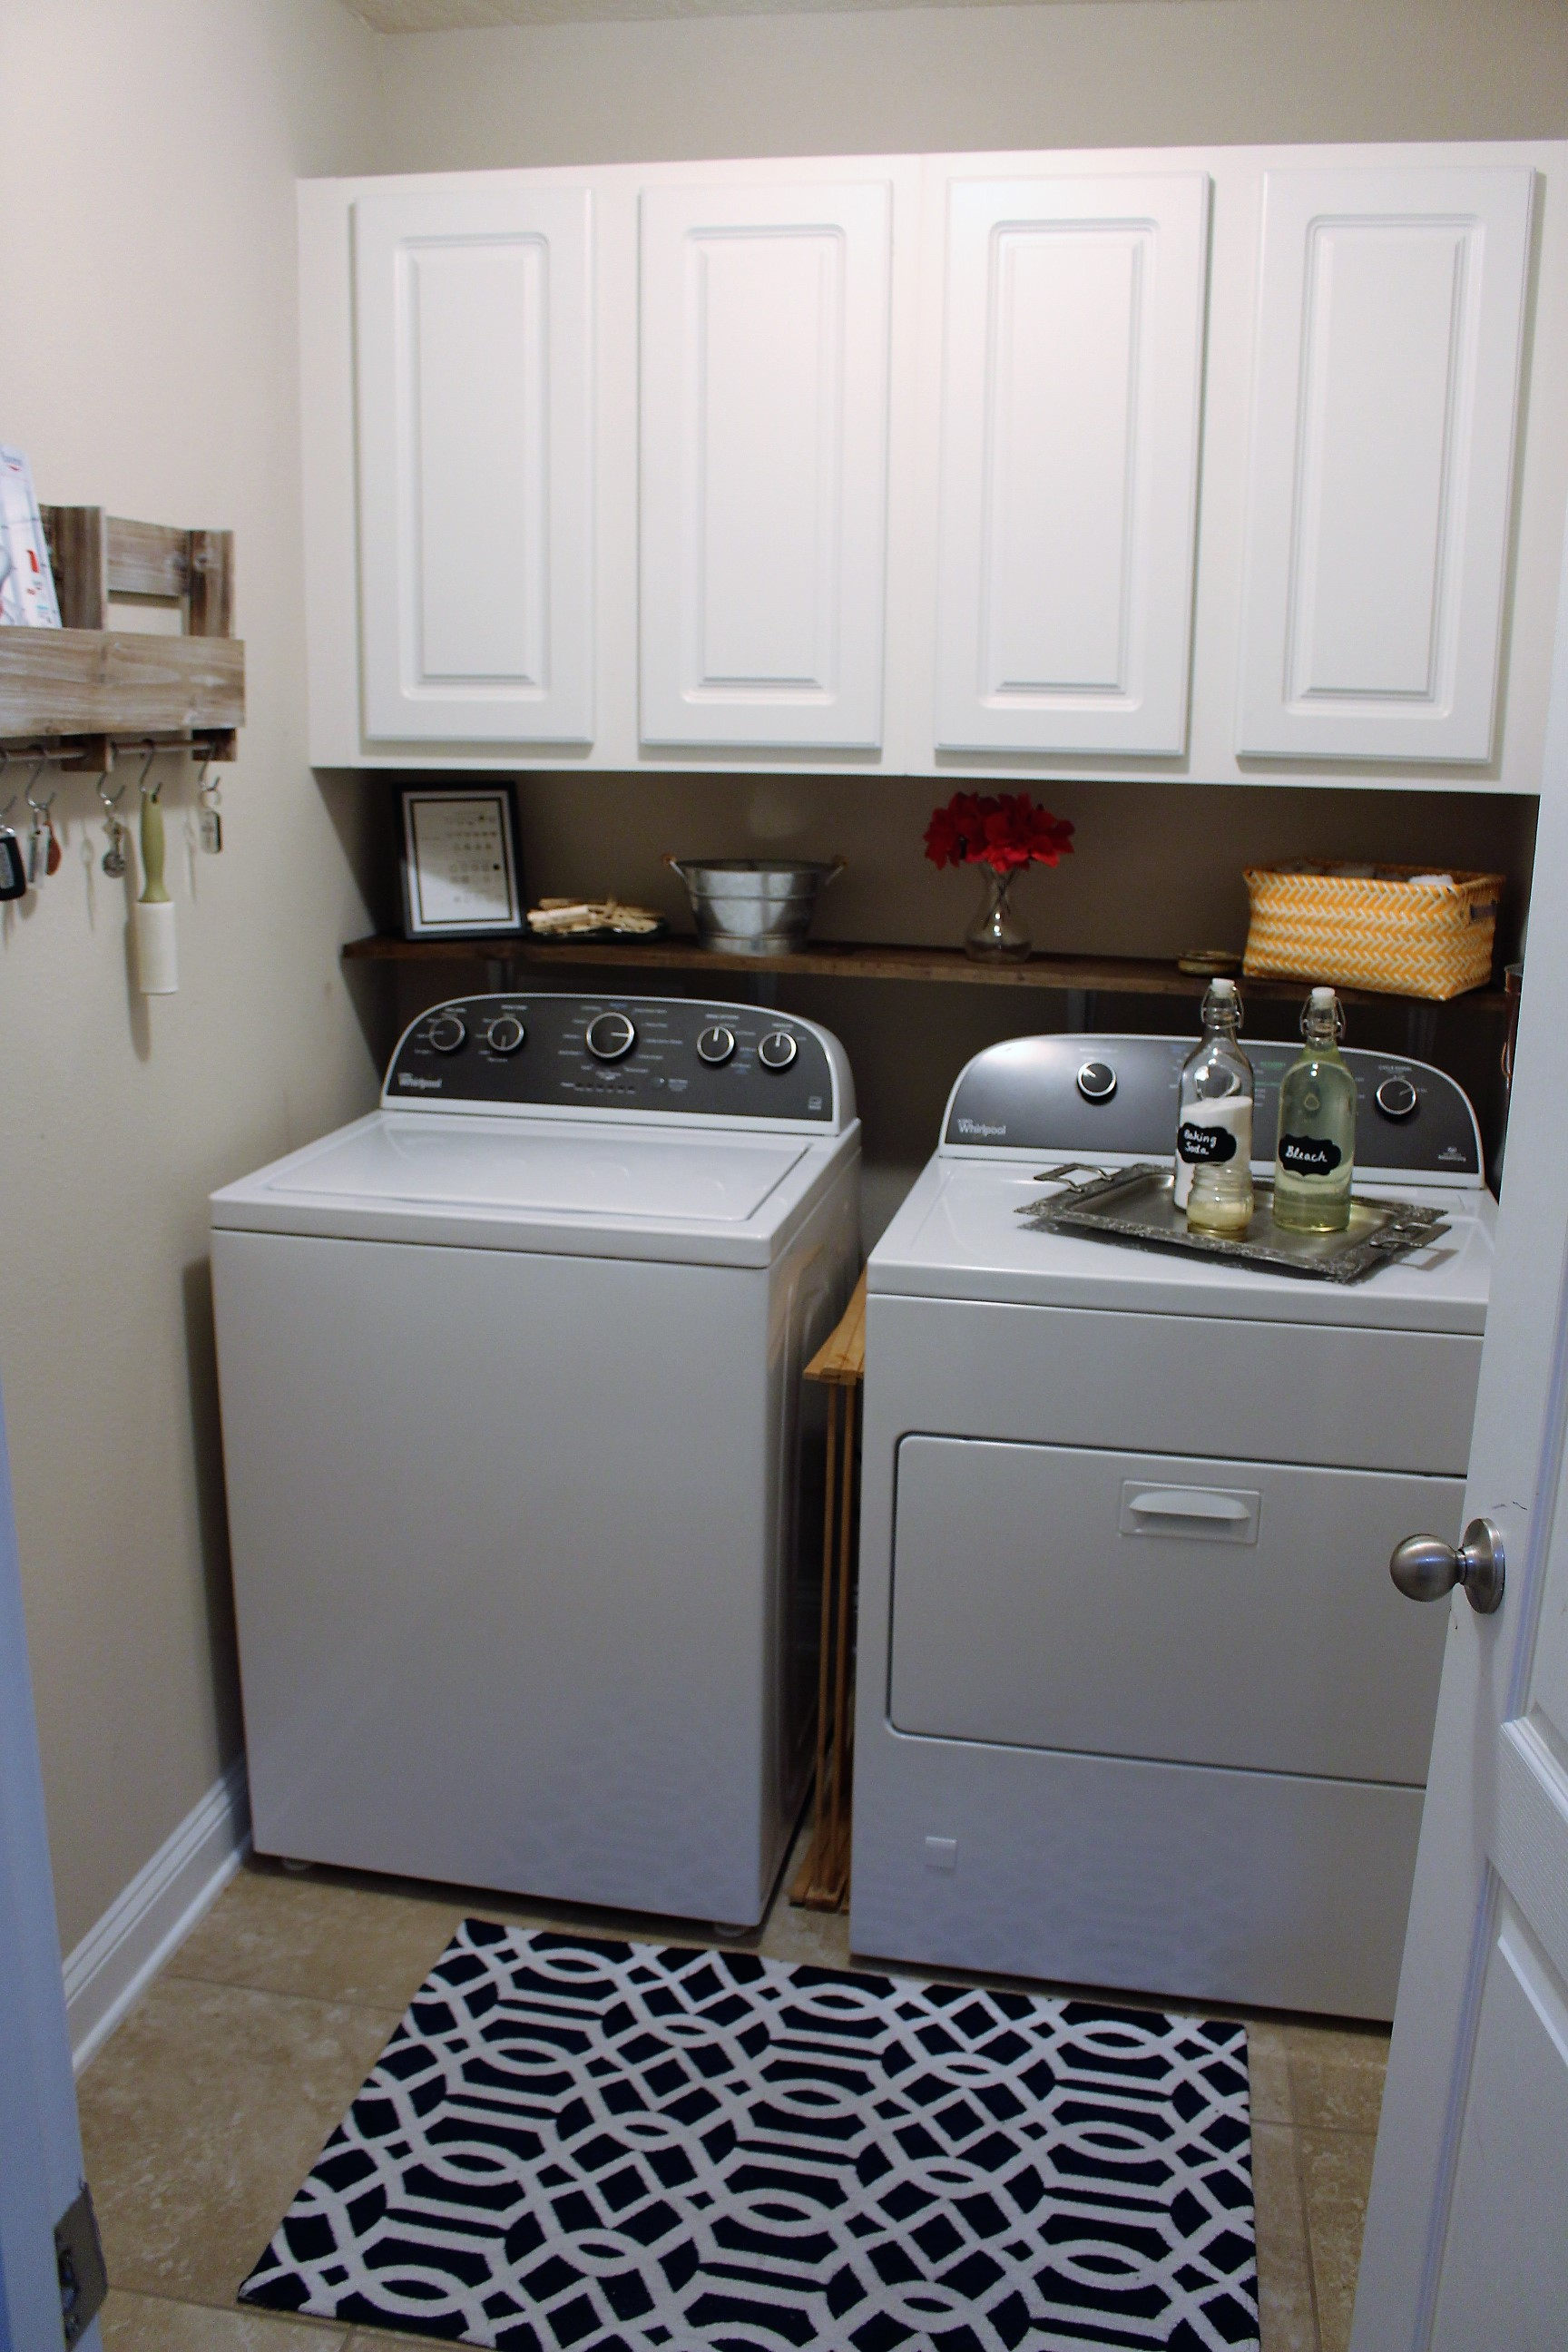 Laundry room deep cleaning